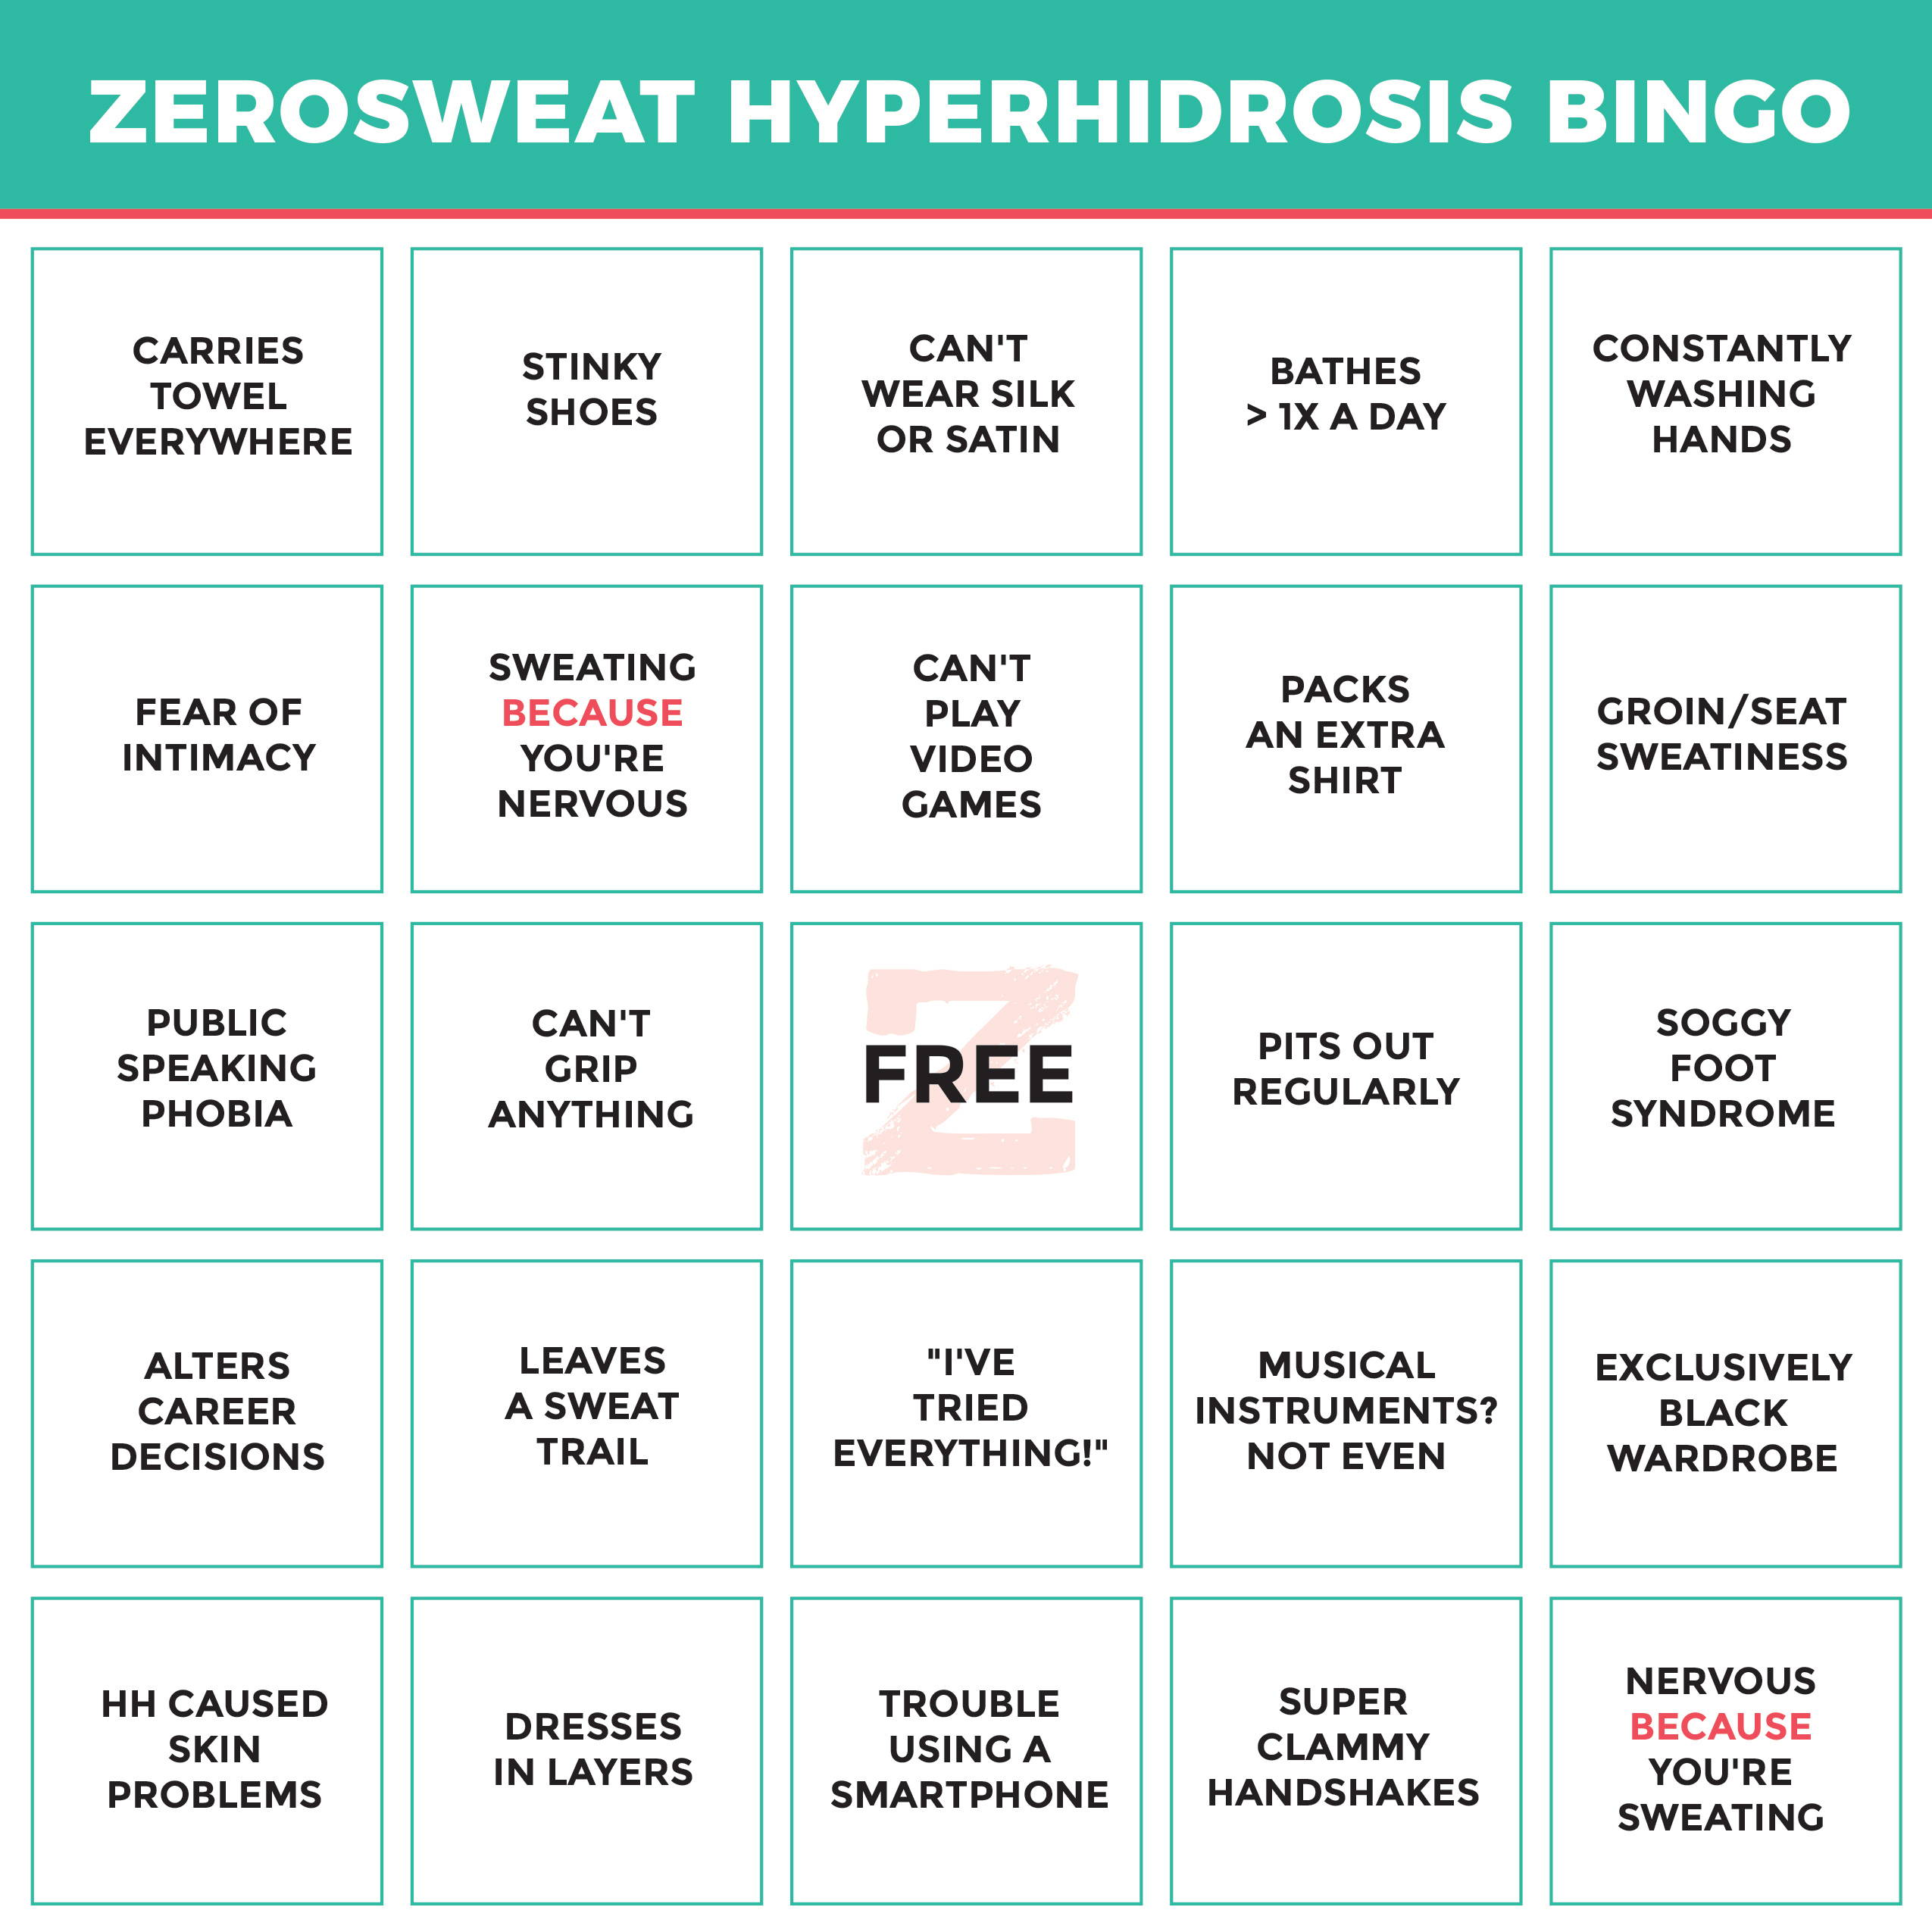 Hyperhidrosis Bingo 24 Things Hyperhidrosis Sufferers Deal With Daily Zerosweat